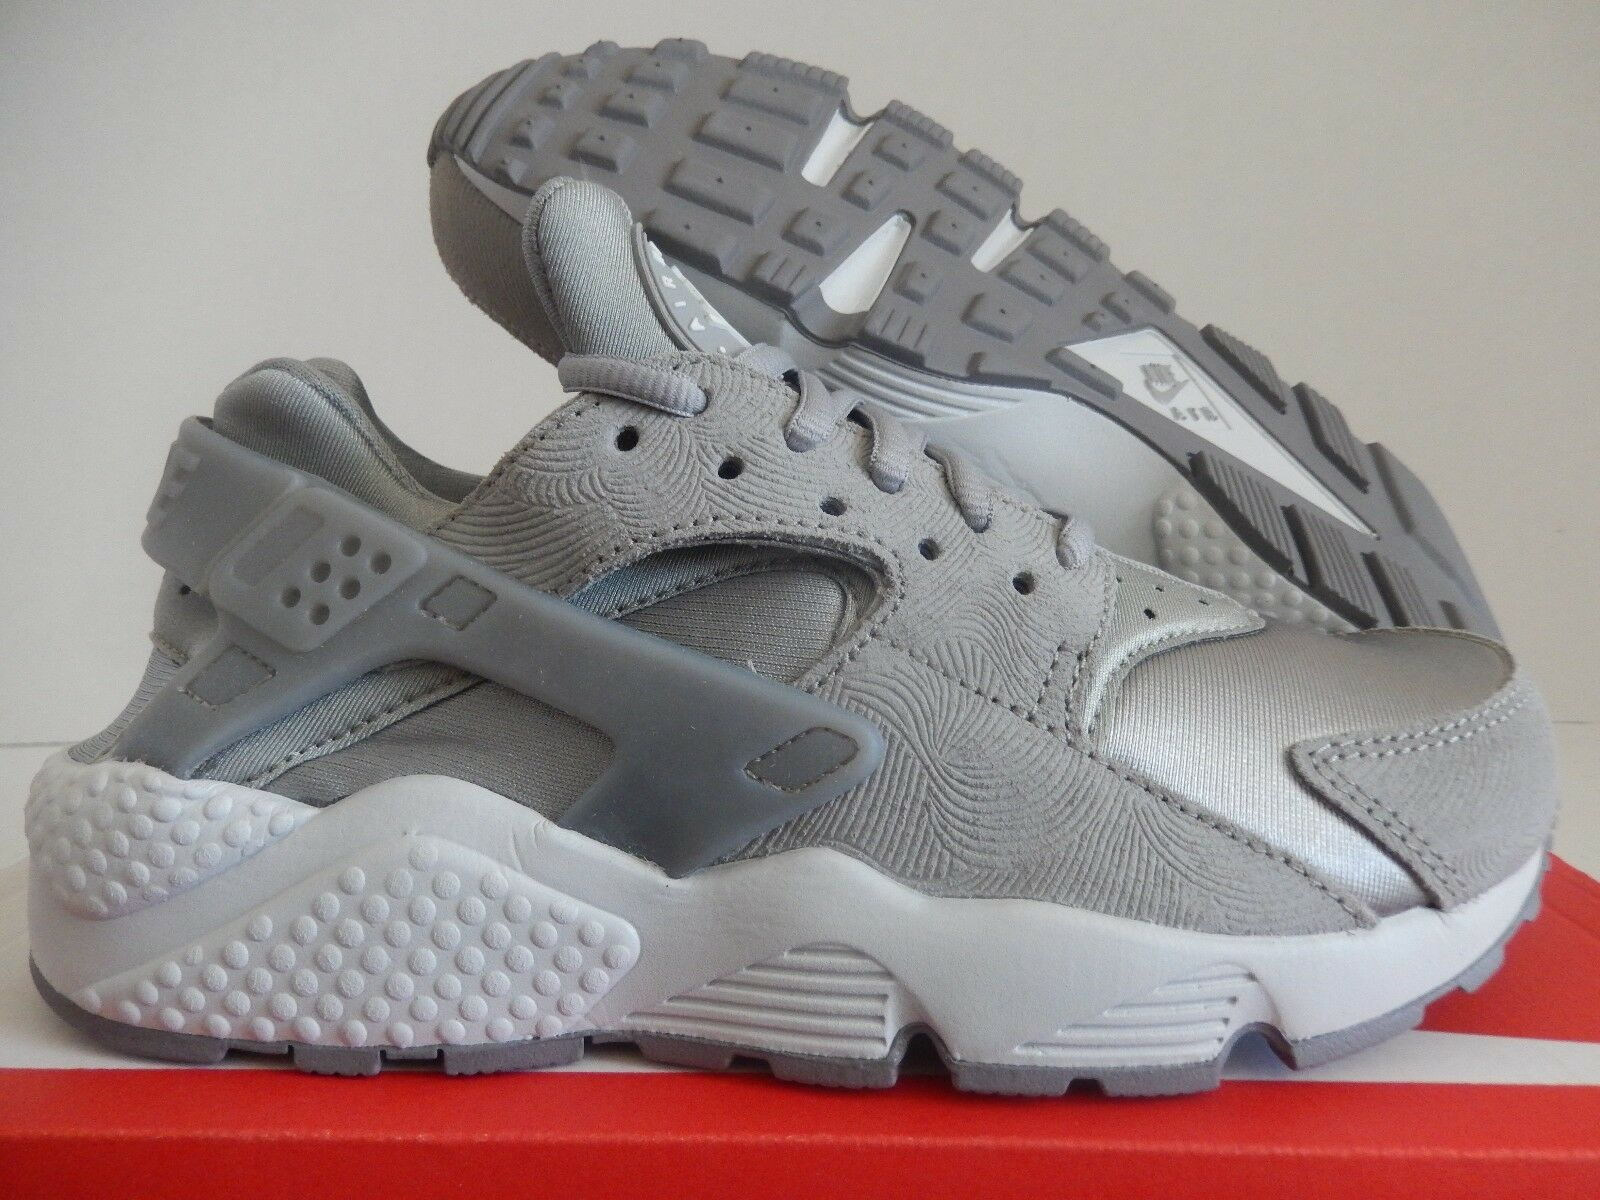 WMNS NIKE AIR HUARACHE RUN PRM PREMIUM SUEDE MEDIUM GREY SZ 7 [833145-002]